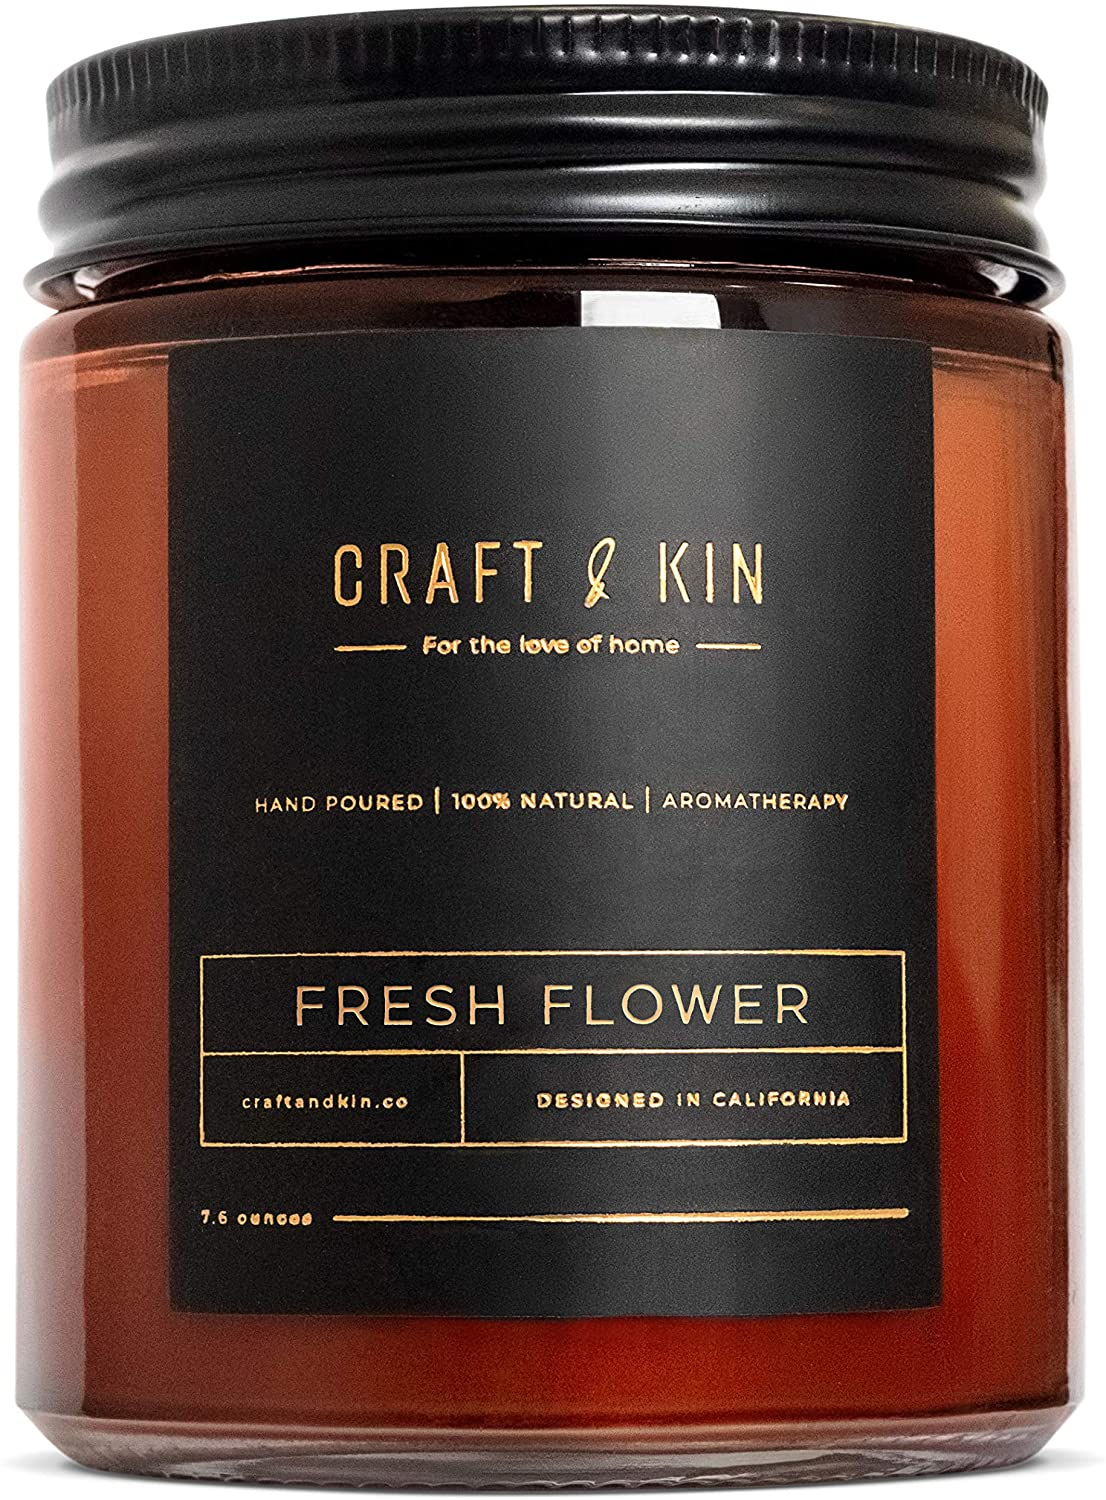 Craft & Kin soy candle as an addition for self care strategies